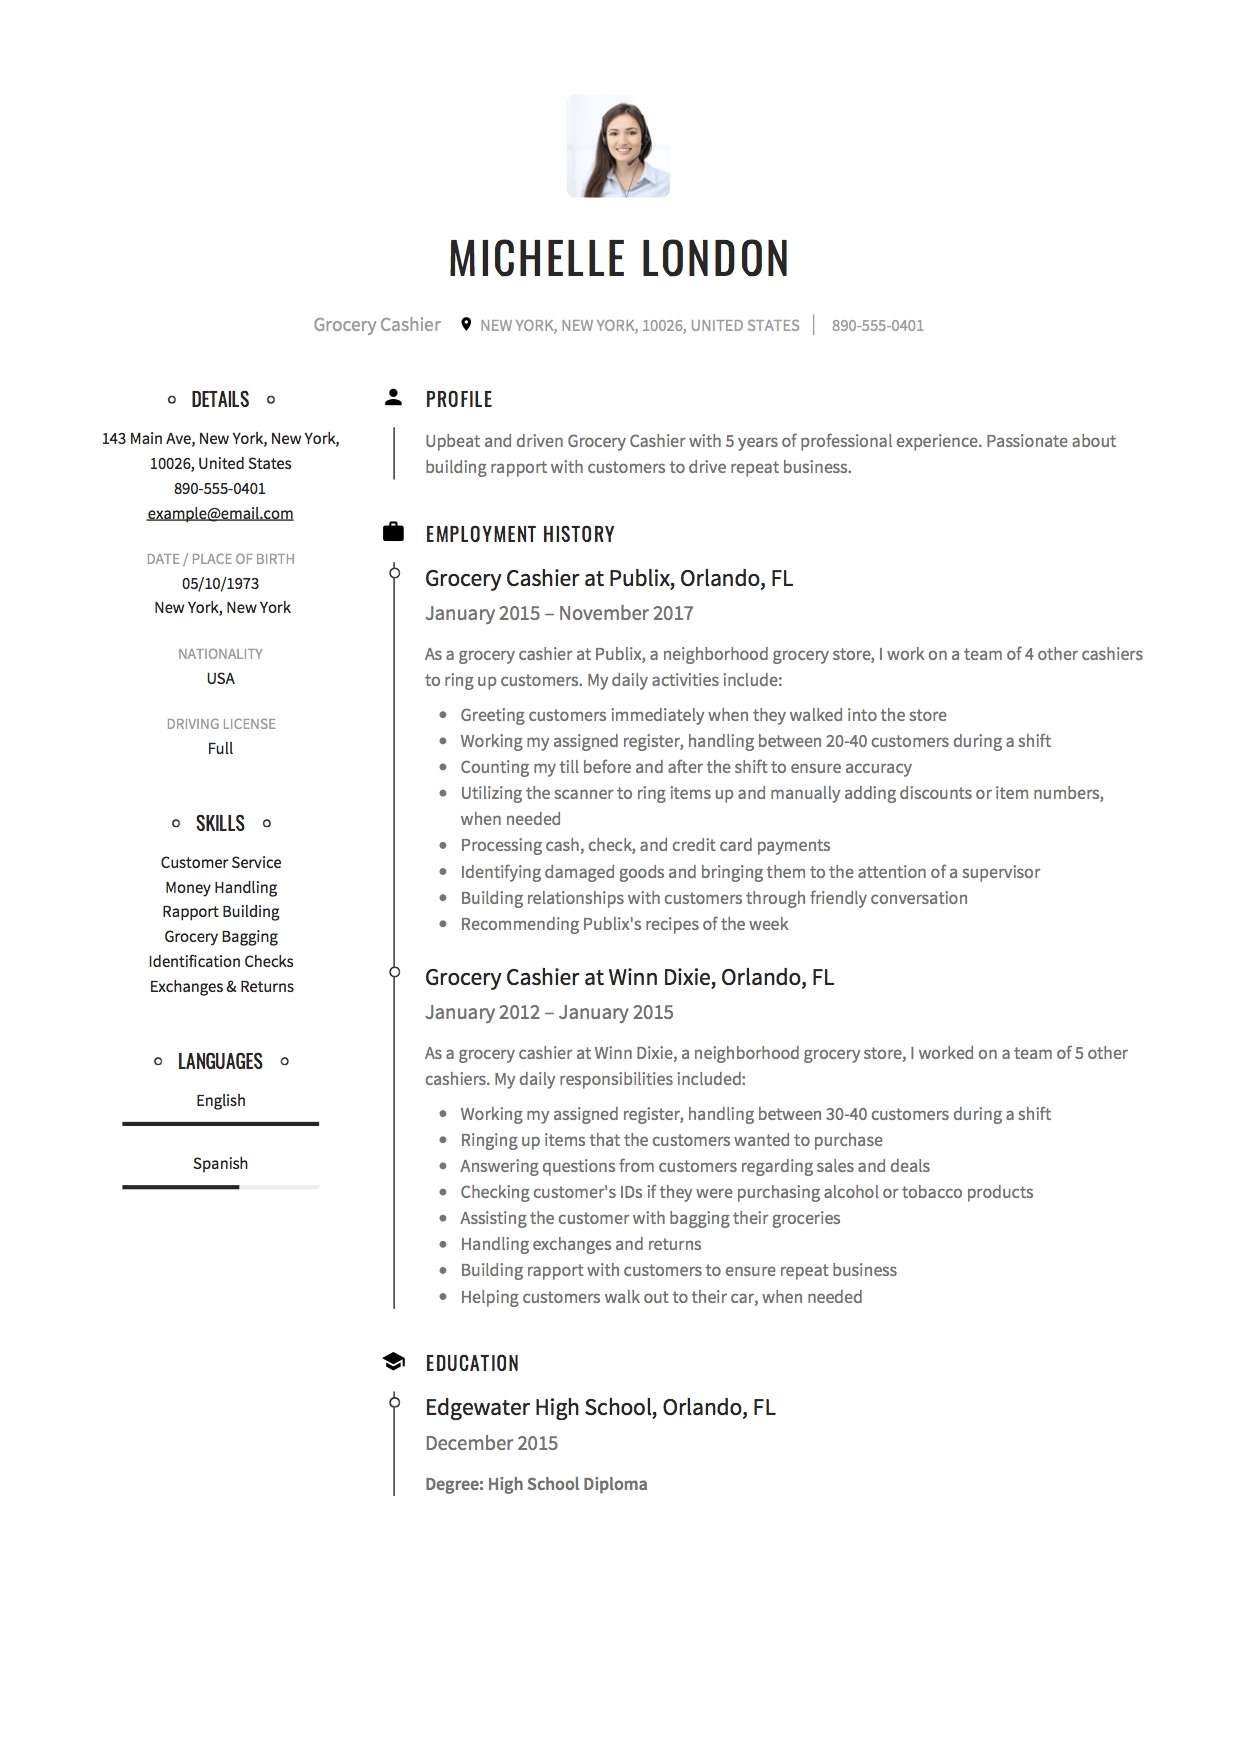 Cashier Experience Resume 12 Grocery Cashier Resume Sample S 2018 Free Downloads